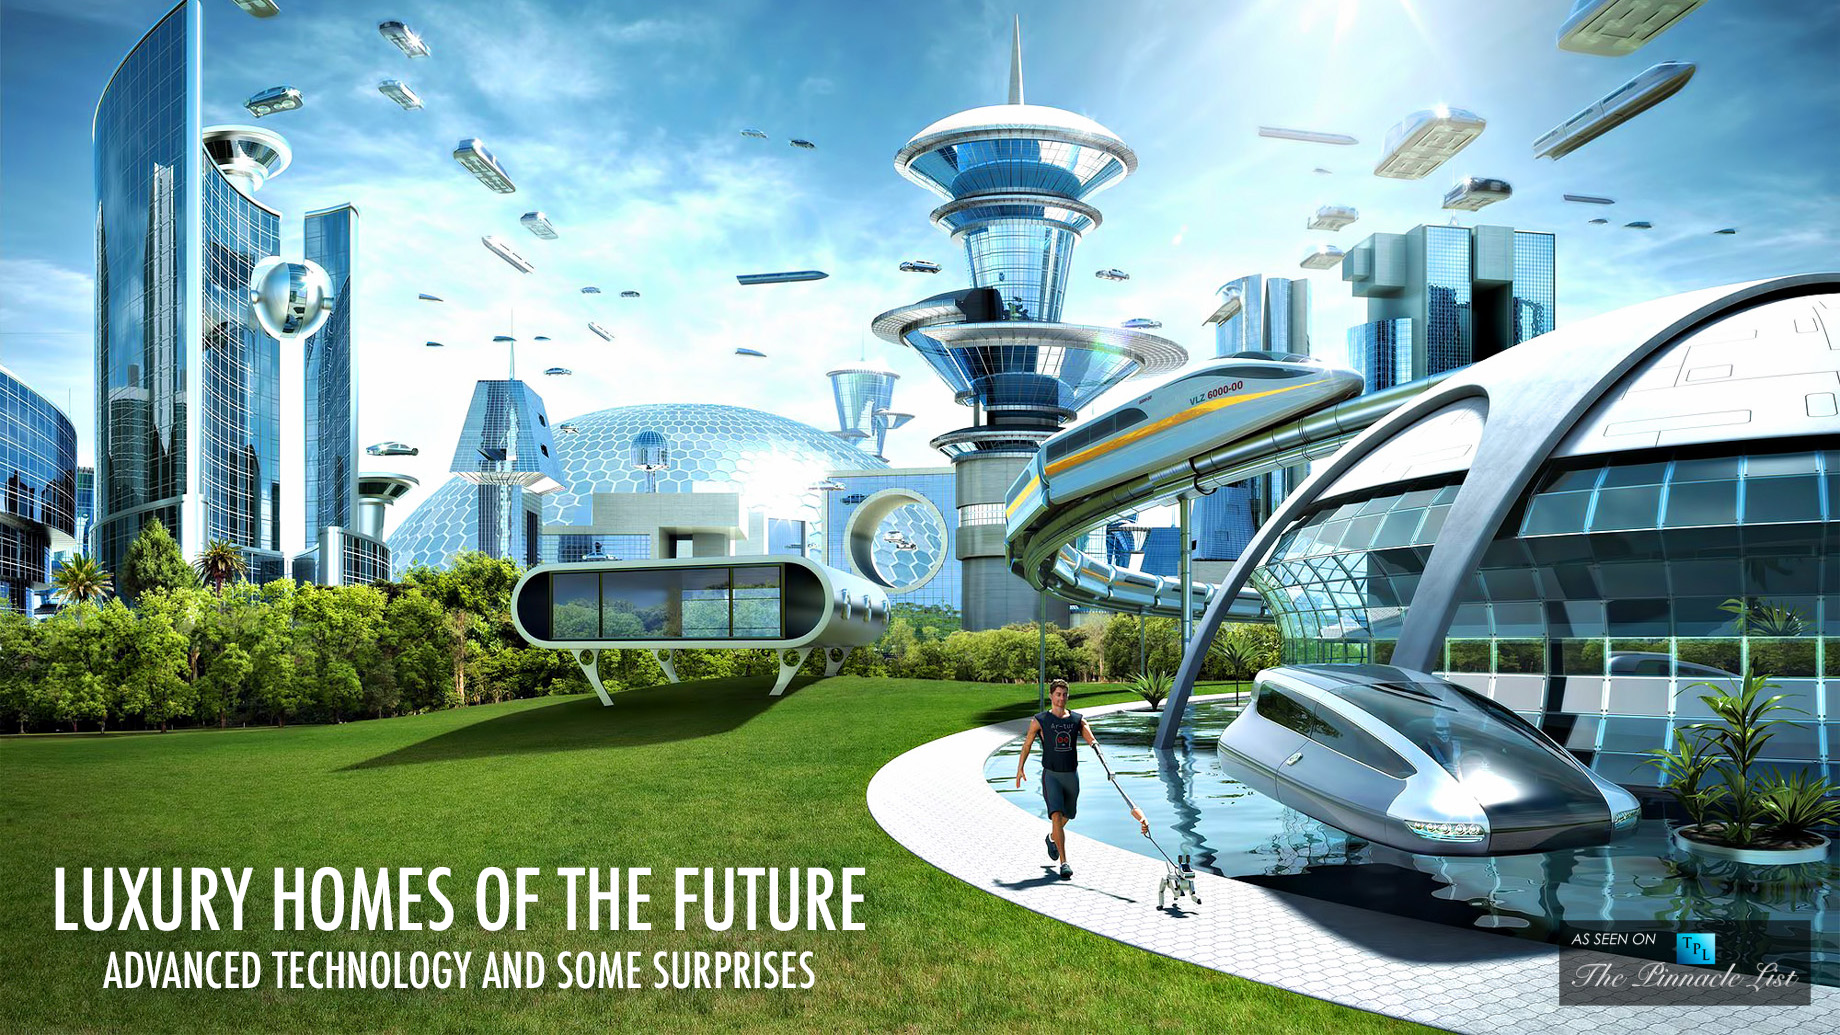 Luxury Homes of the Future - Advanced Technology and Some Surprises